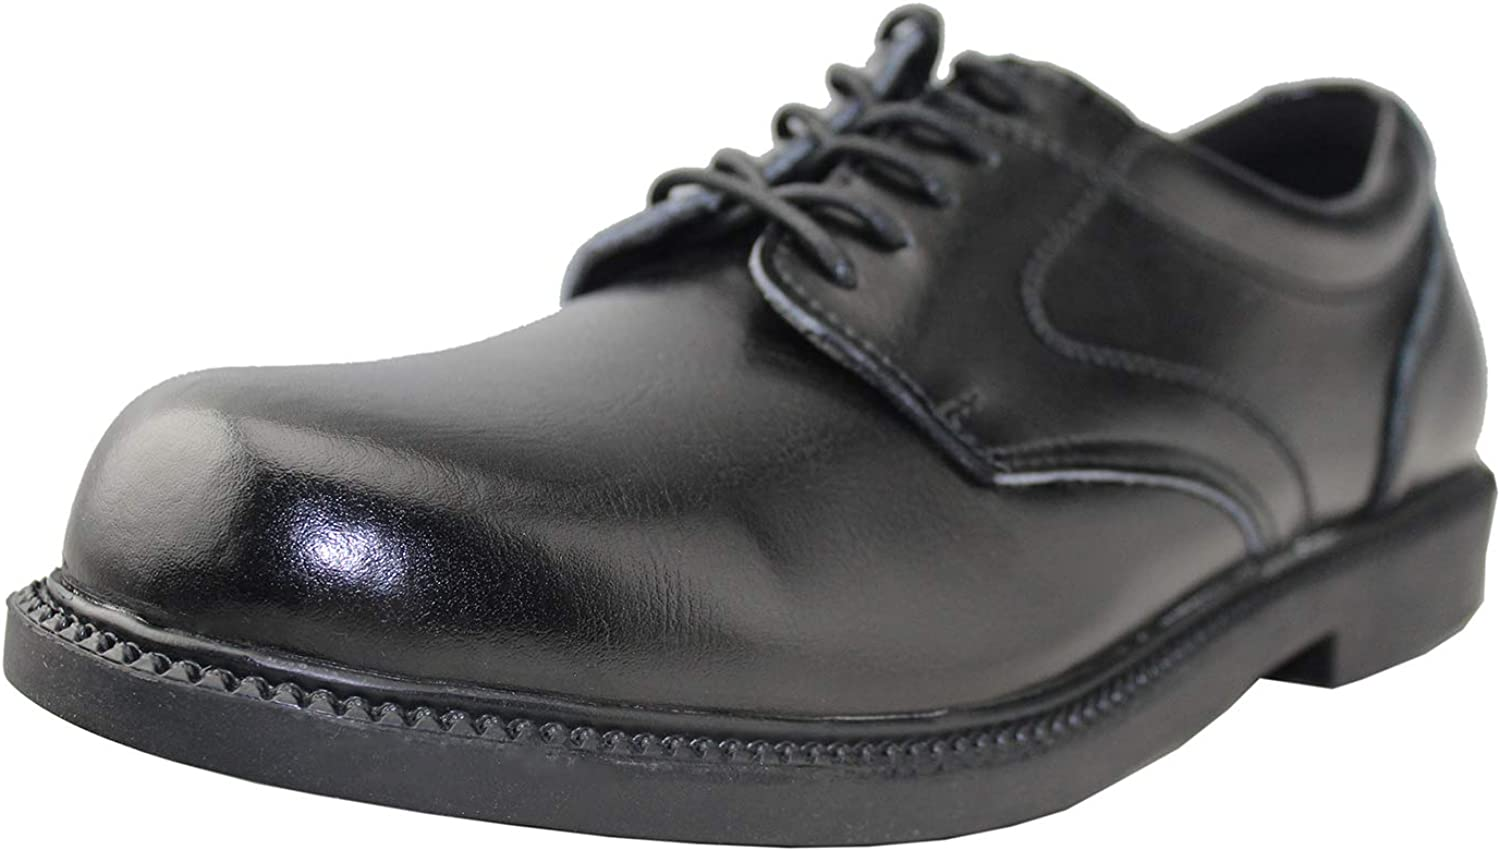 Mens Comfortable Oxford Wate Resistant Leather Shoes Non Slip Casual Fashion Shoes